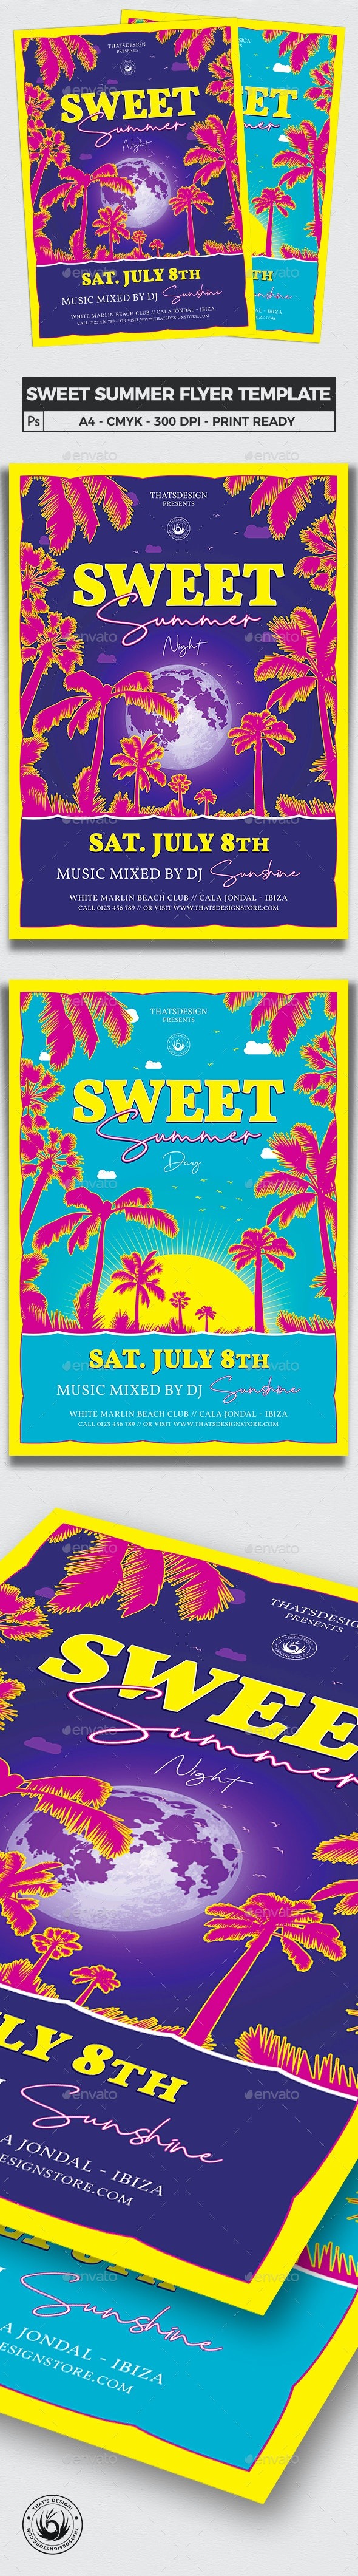 Sweet Summer Flyer Template - Clubs & Parties Events